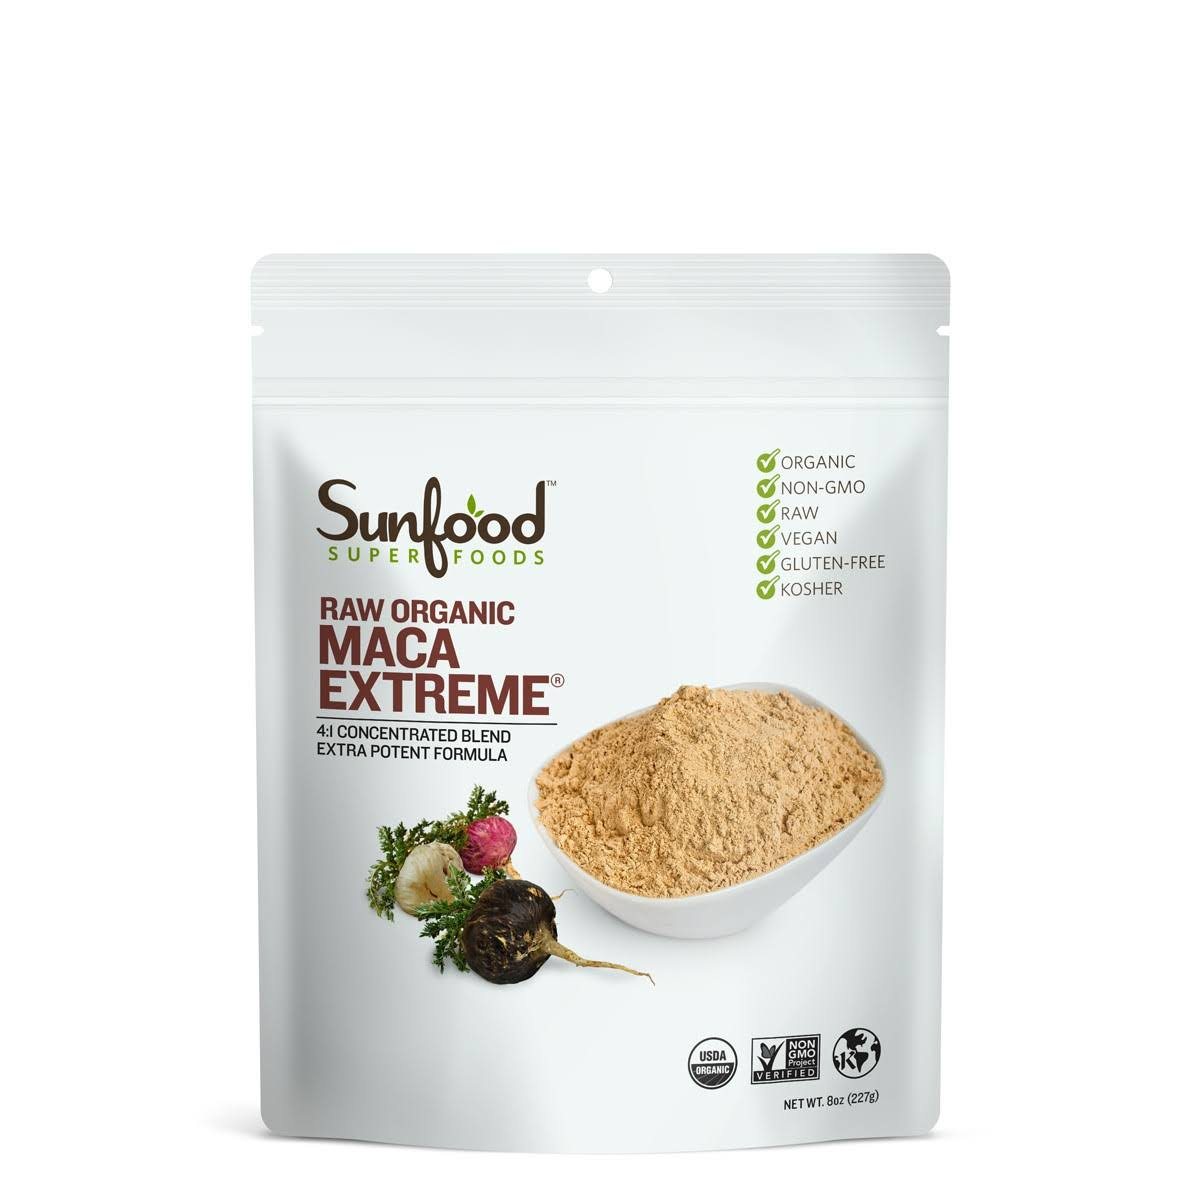 Sunfood Superfoods Maca Extreme - 227g